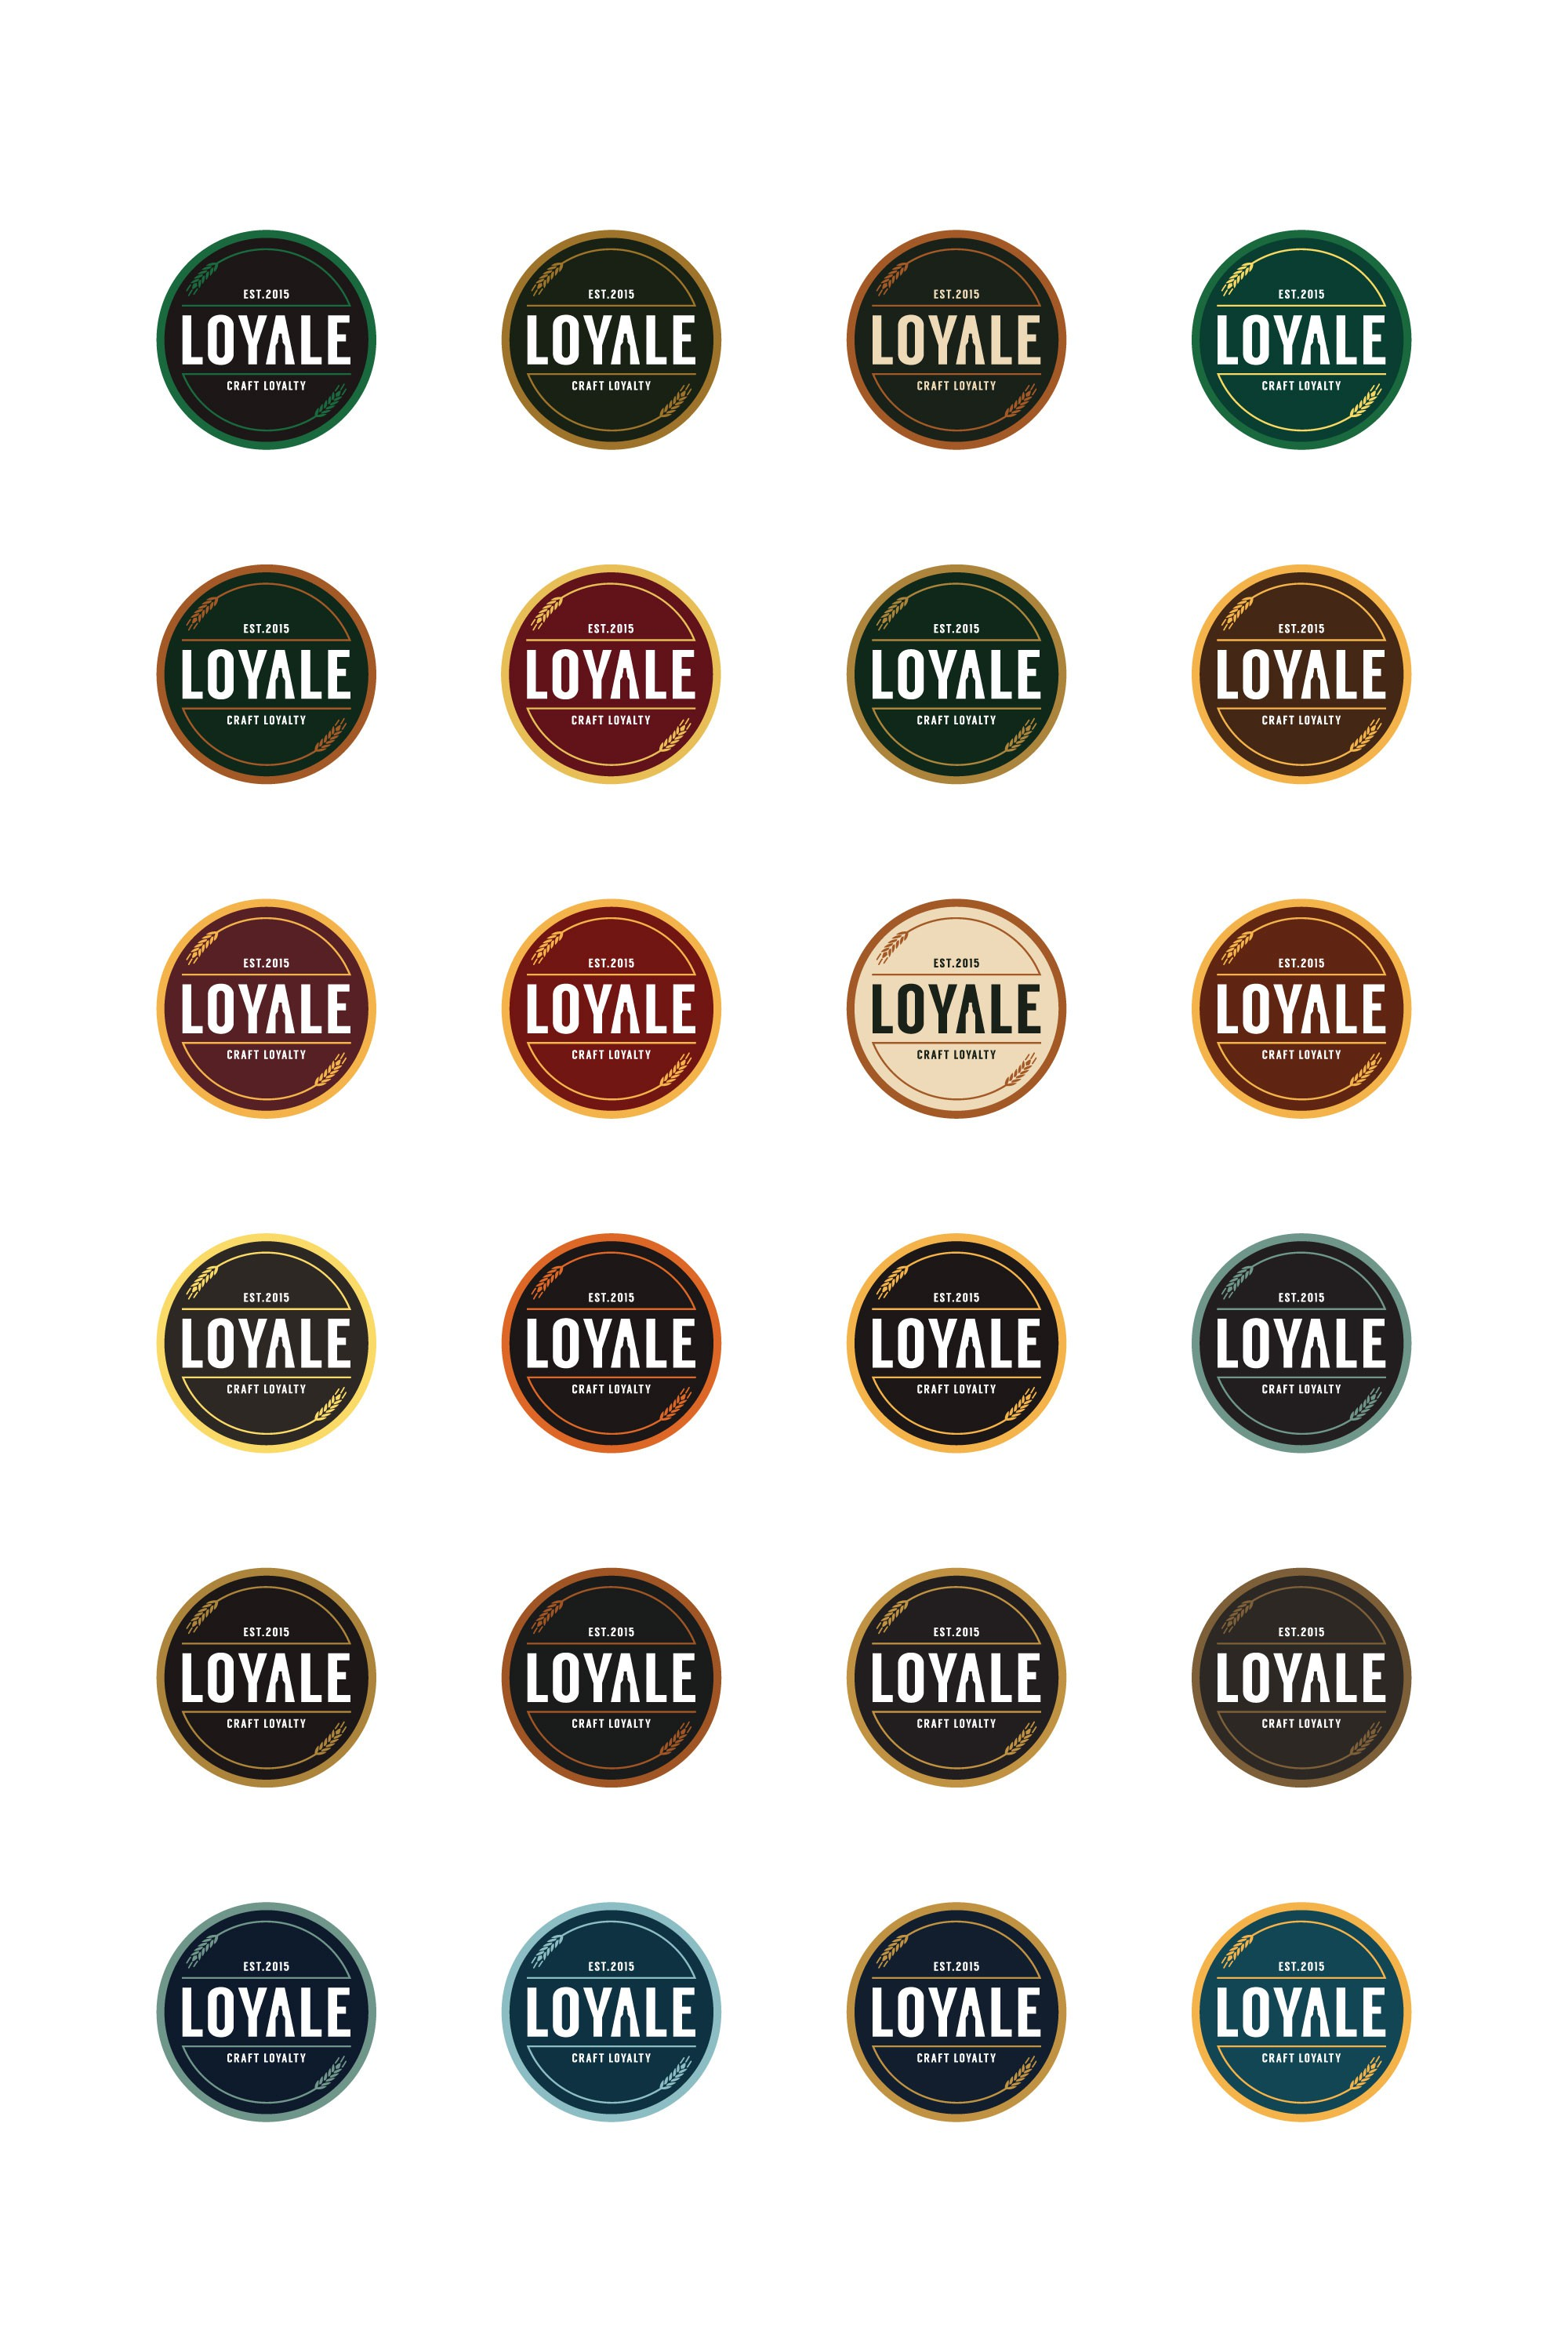 Create a craft beer logo for a customer loyalty program